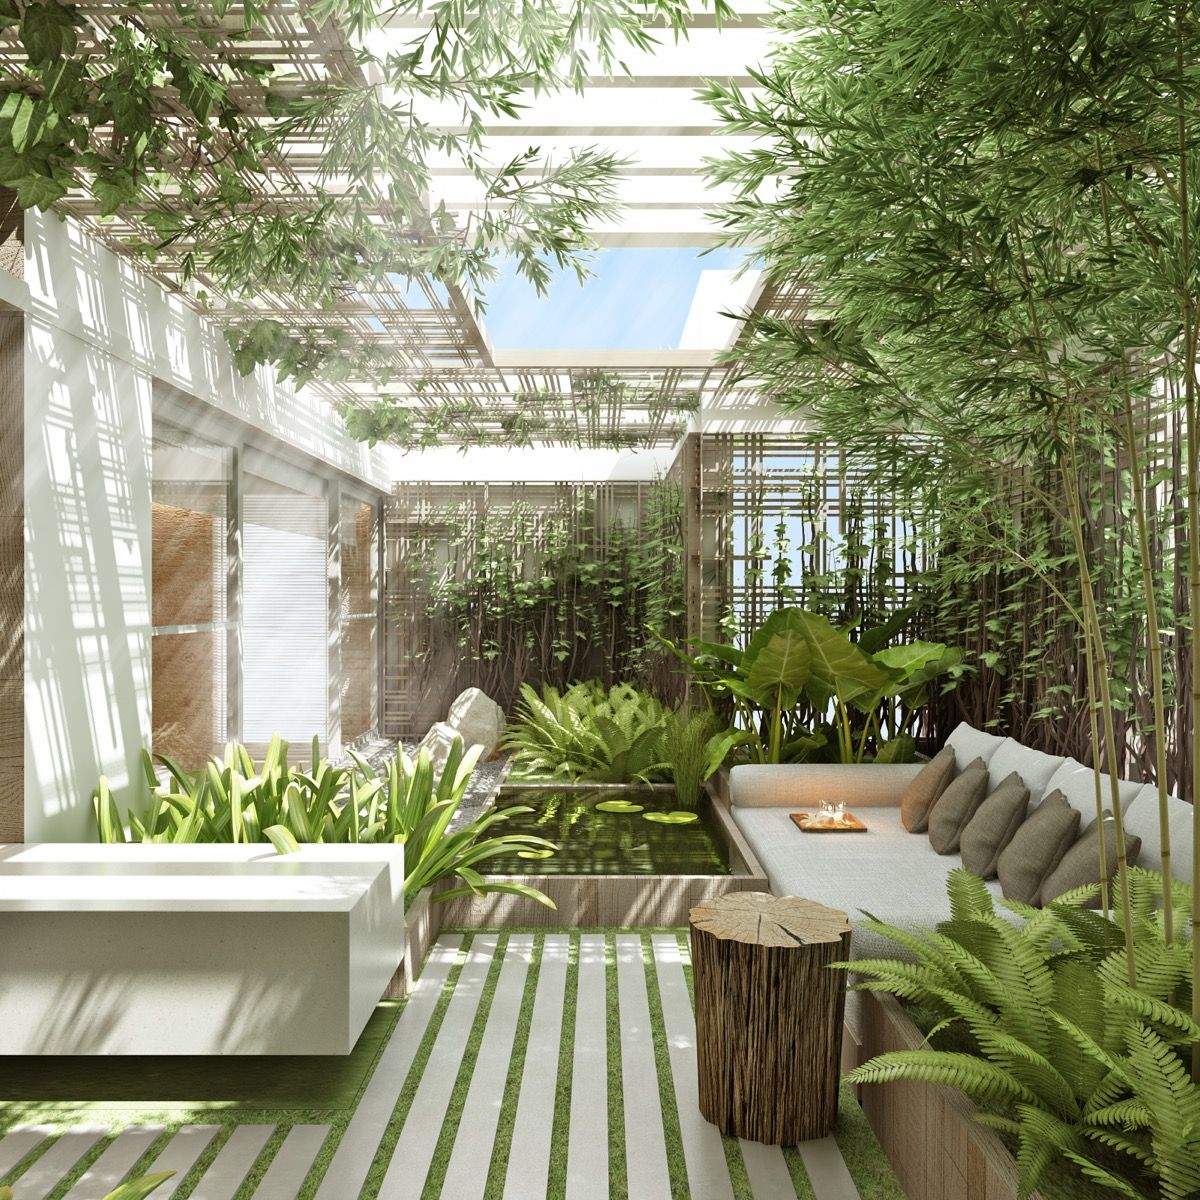 51 captivating courtyard designs that make us go wow on backyard landscape architecture inspirations id=15885